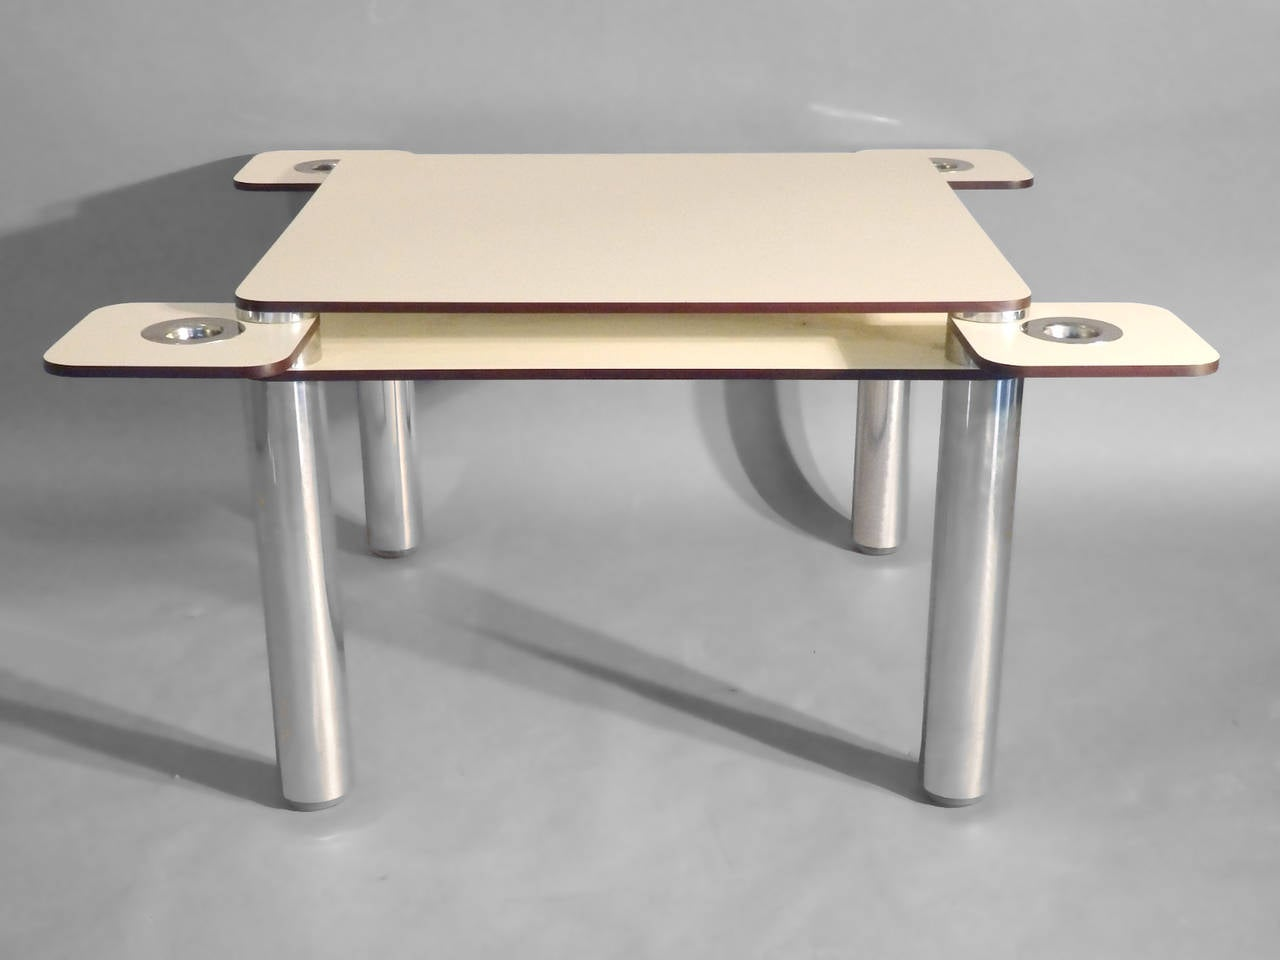 post modernist furniture. Post Modern Italian Poker Game Table With Four Swivel Chairs By Joe Columbo 2 Modernist Furniture C